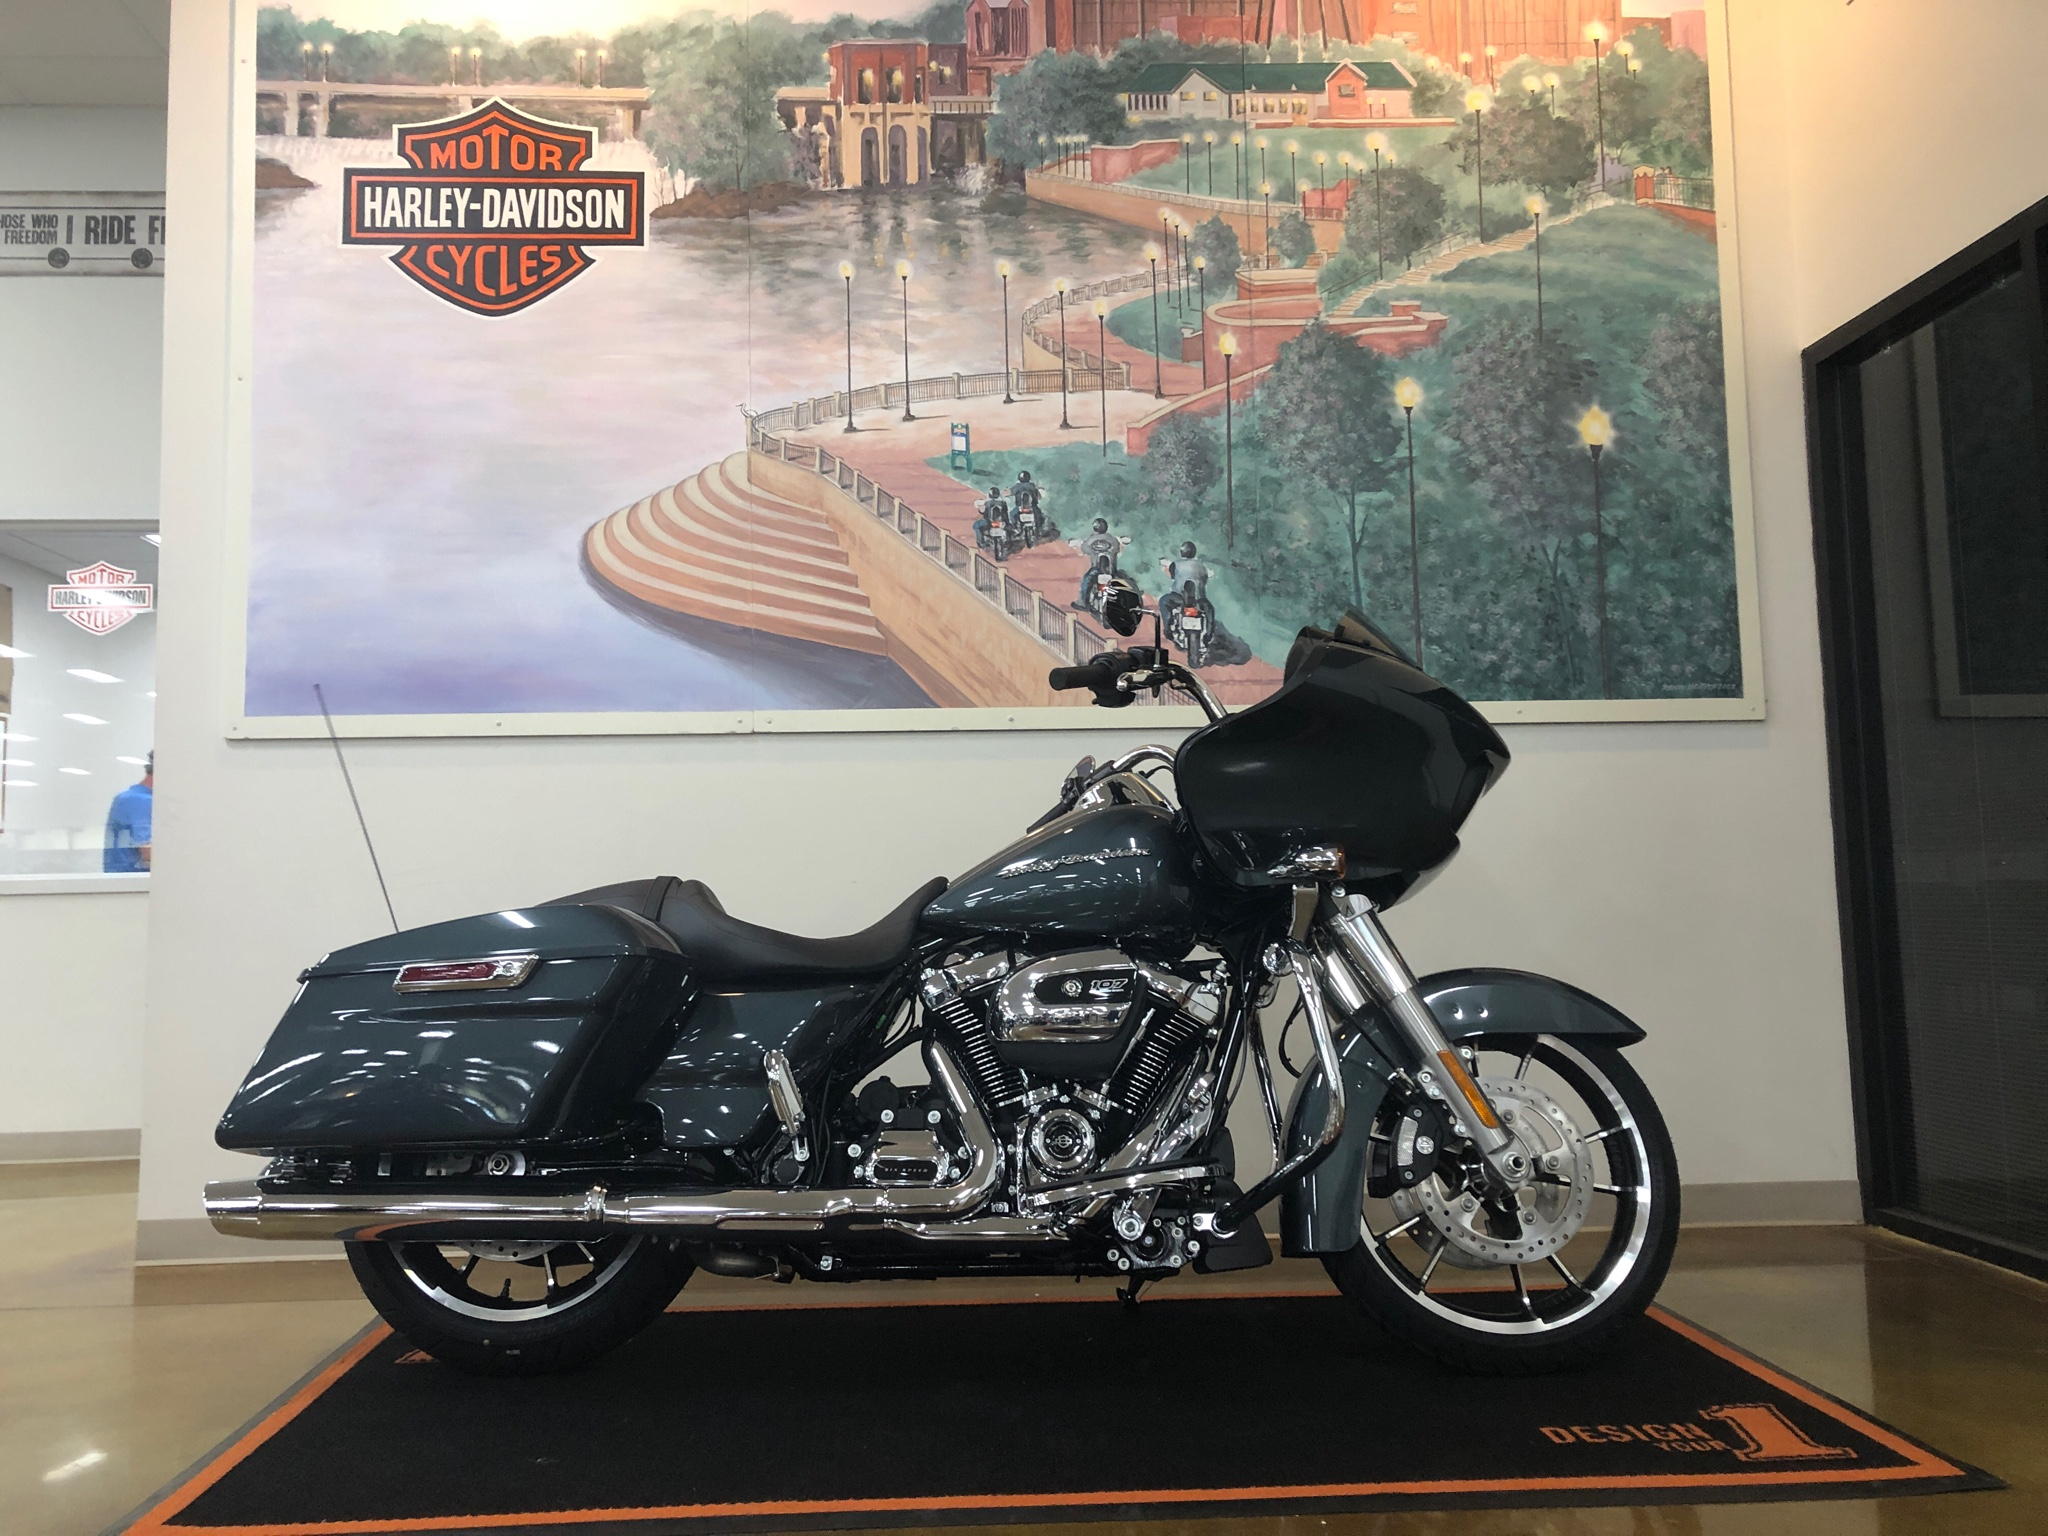 52 New and Used motorcycles & bikes in stock Serving Albany